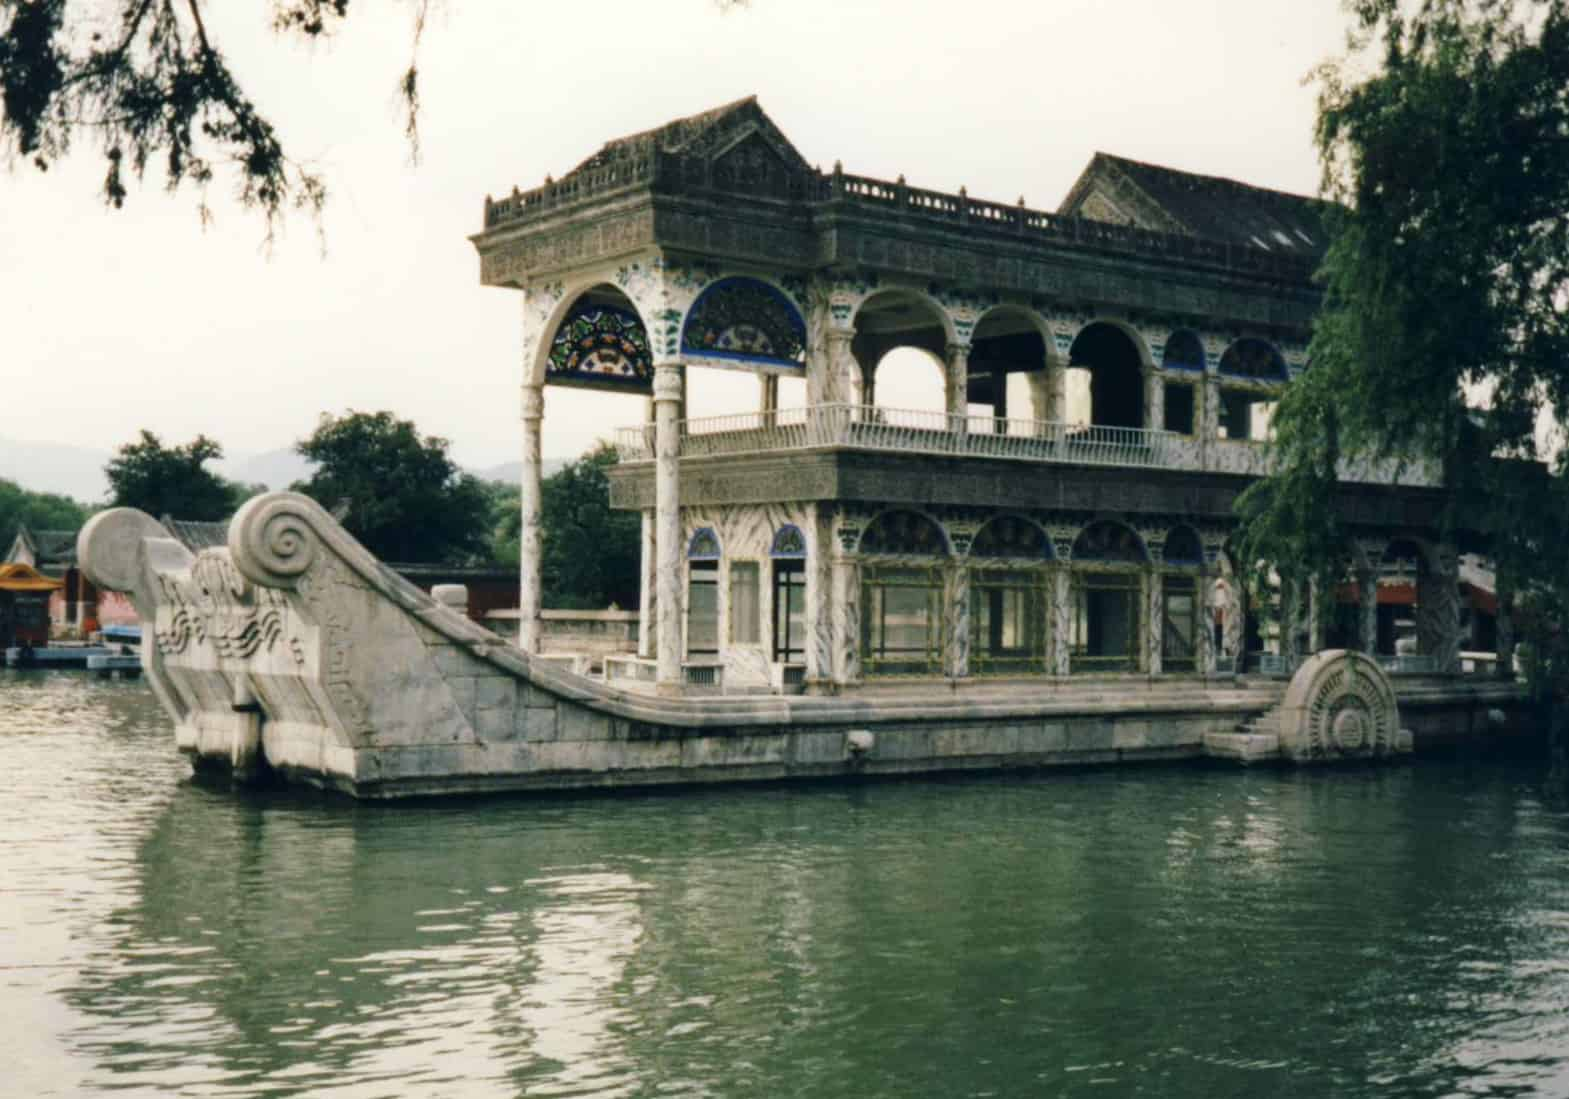 Marble Boat at the Imperial Summer Palace, Beijing